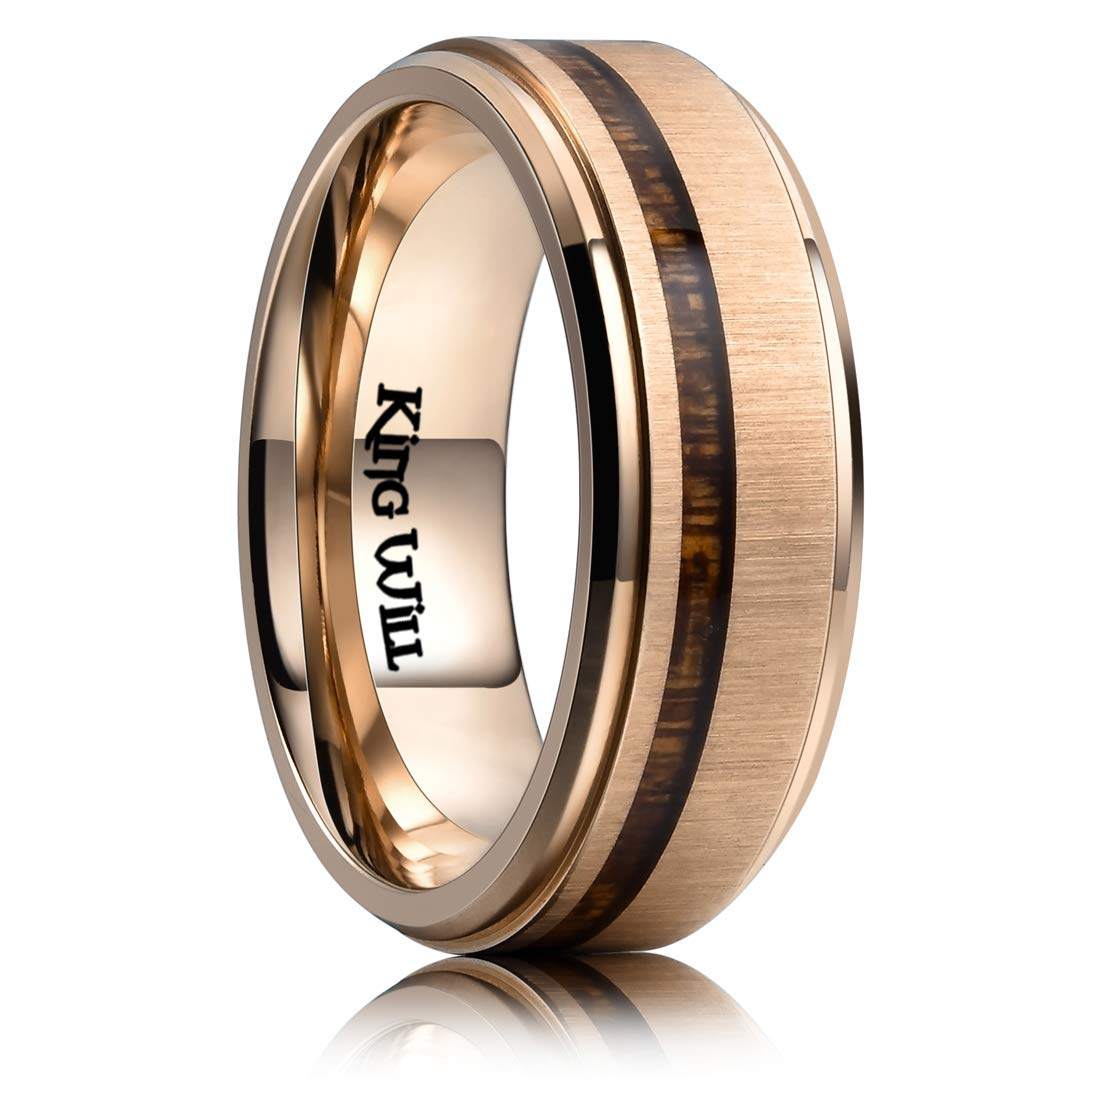 VAKKI 8mm Mens Black Matte Finish Wedding Band Polished Beveled Edge Tungsten Carbide Rings Comfort Fit Size 6-14